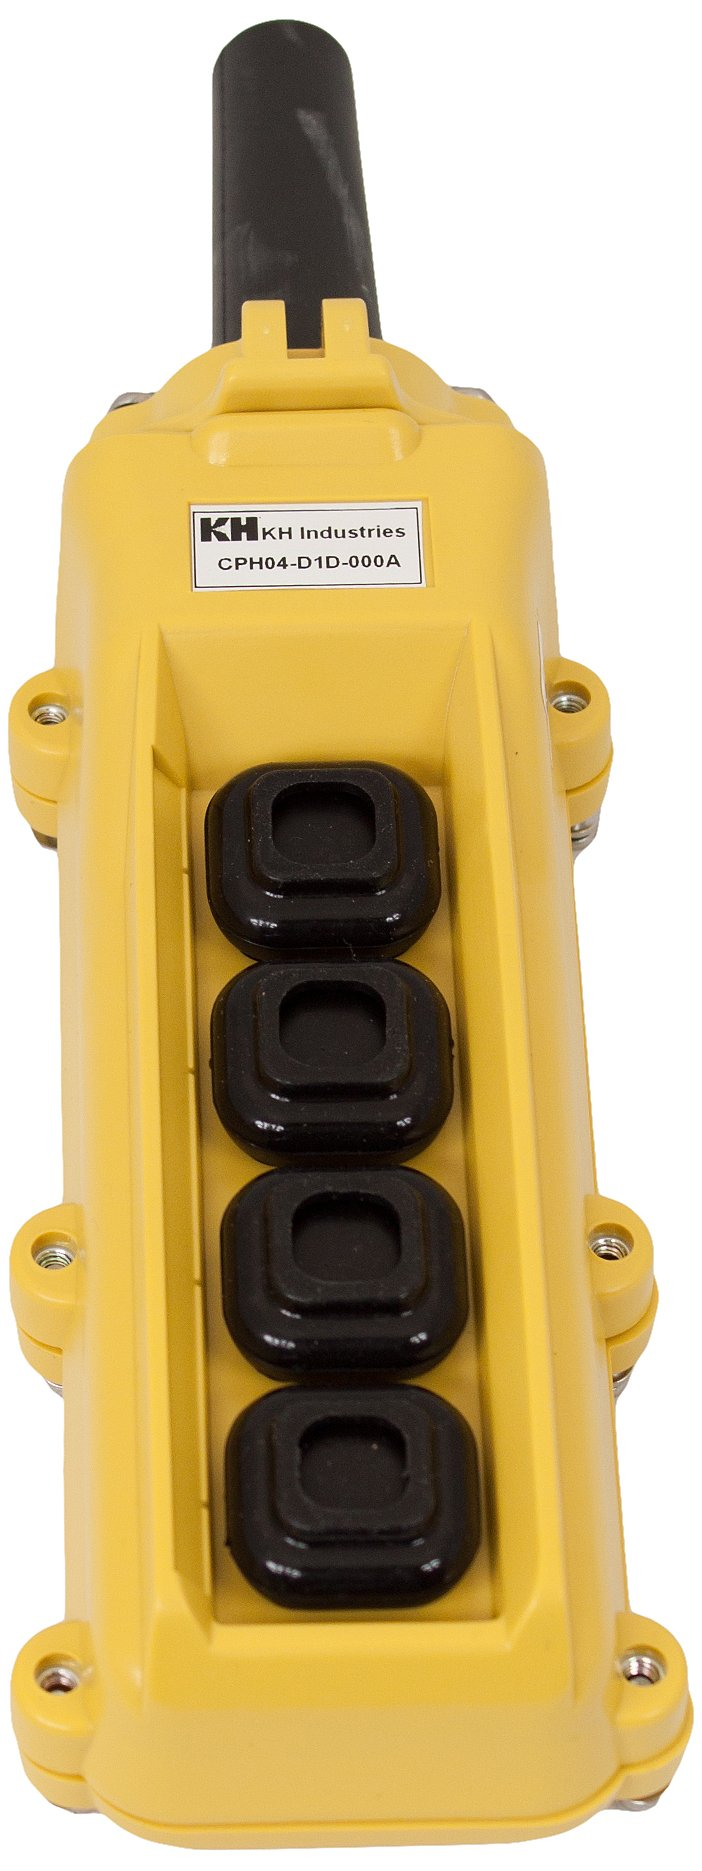 KH Industries CPH04-D1D-000A 4 Push Buttons Pendant Control Switch, 2-Two Speed by KH Industries